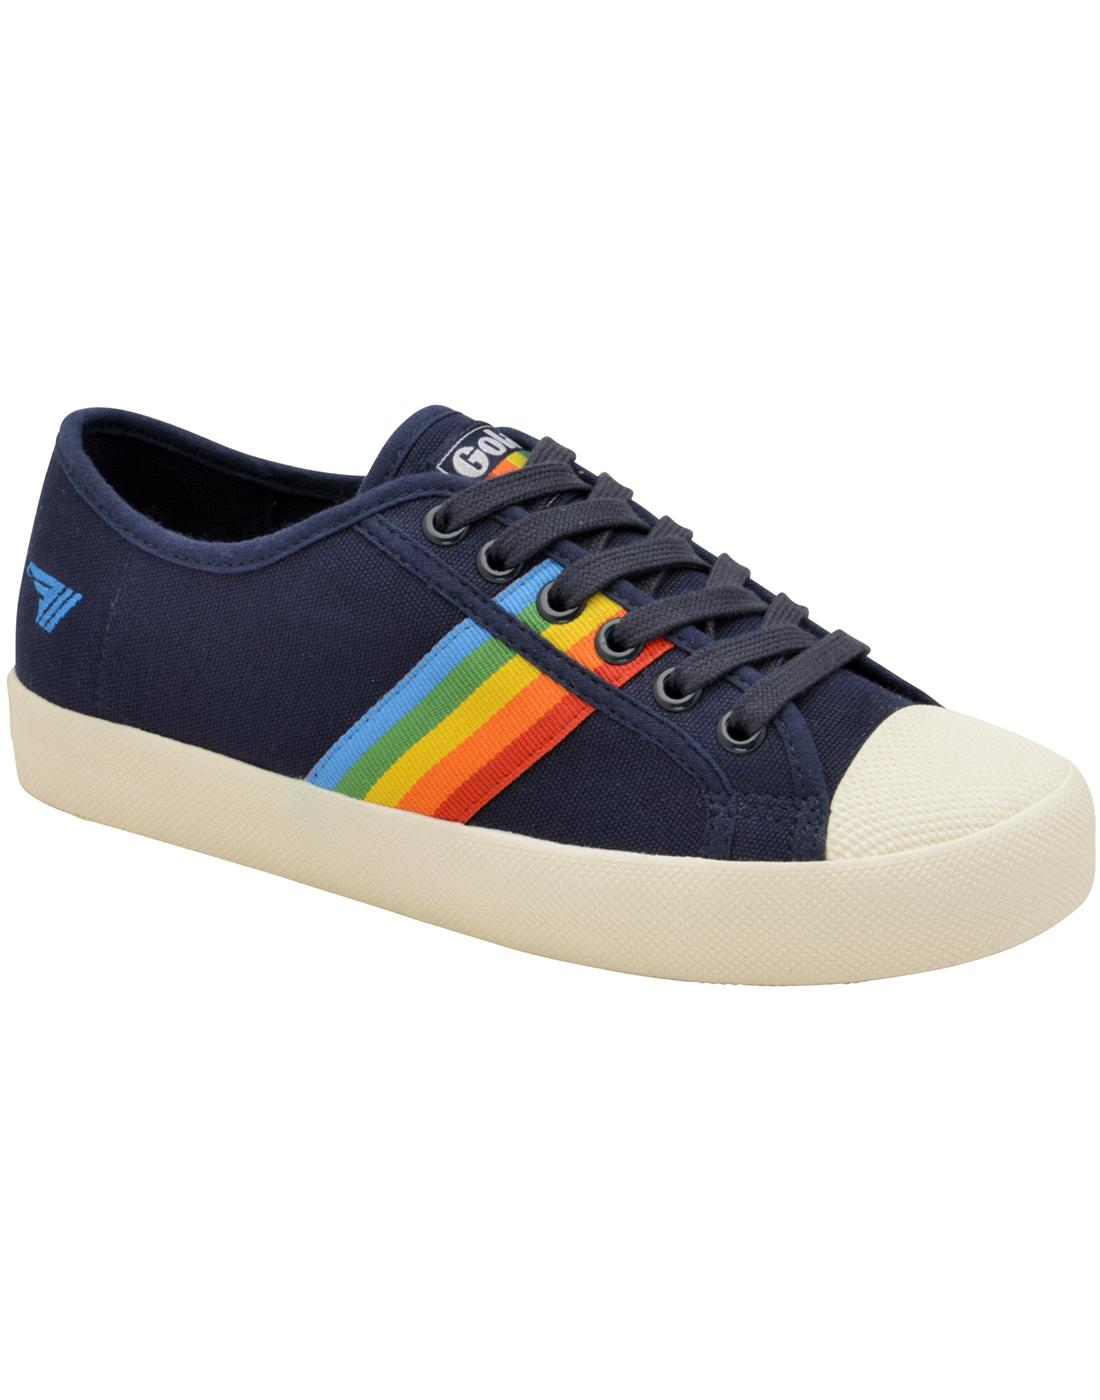 Coaster Rainbow GOLA Retro 90s Canvas Trainers N